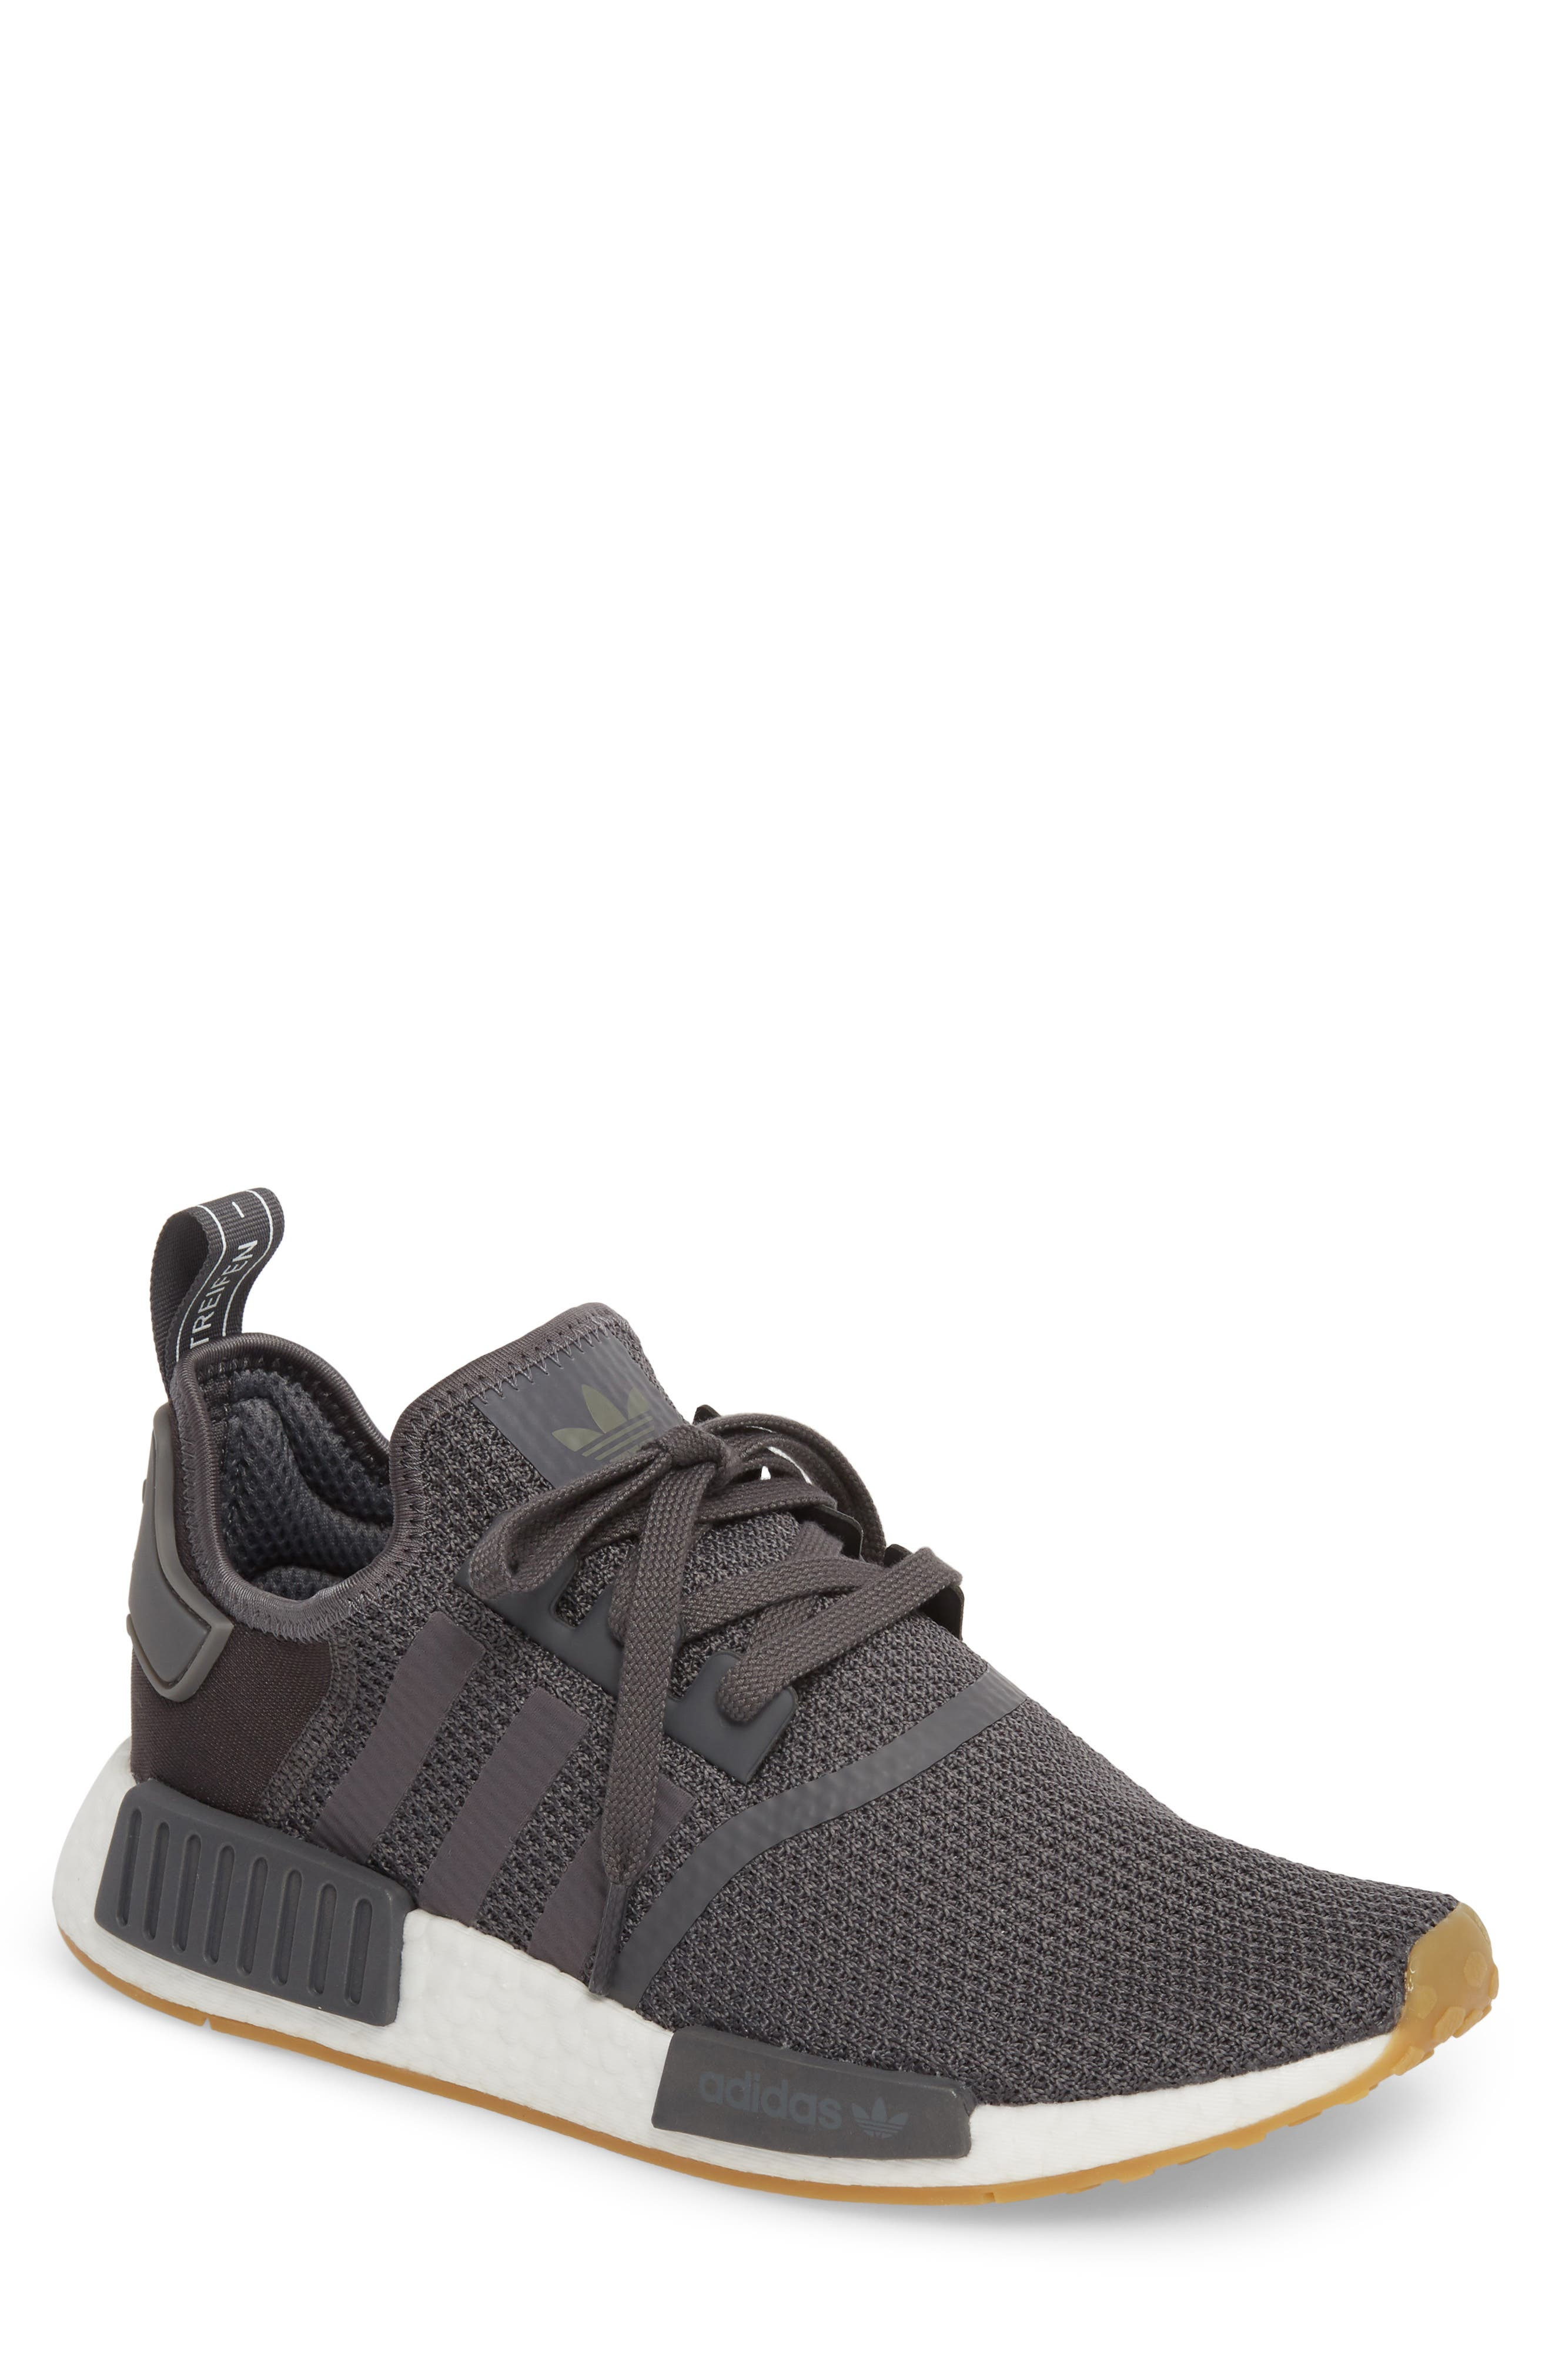 Originals NMD R1 Sneaker,                             Main thumbnail 1, color,                             Grey/ Black